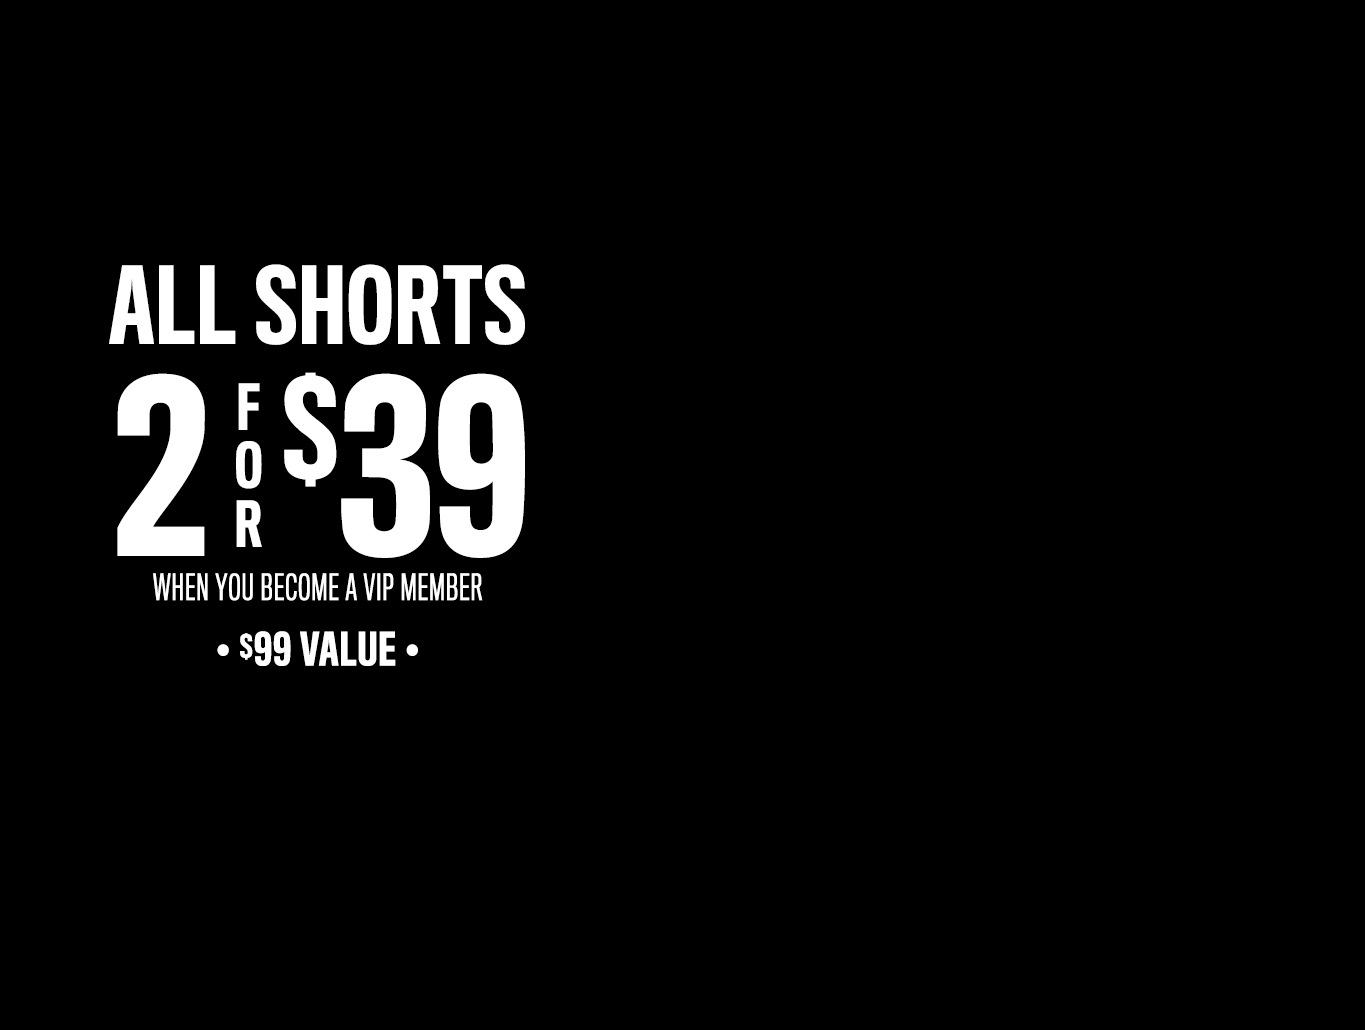 ALL SHORTS 2 for $39